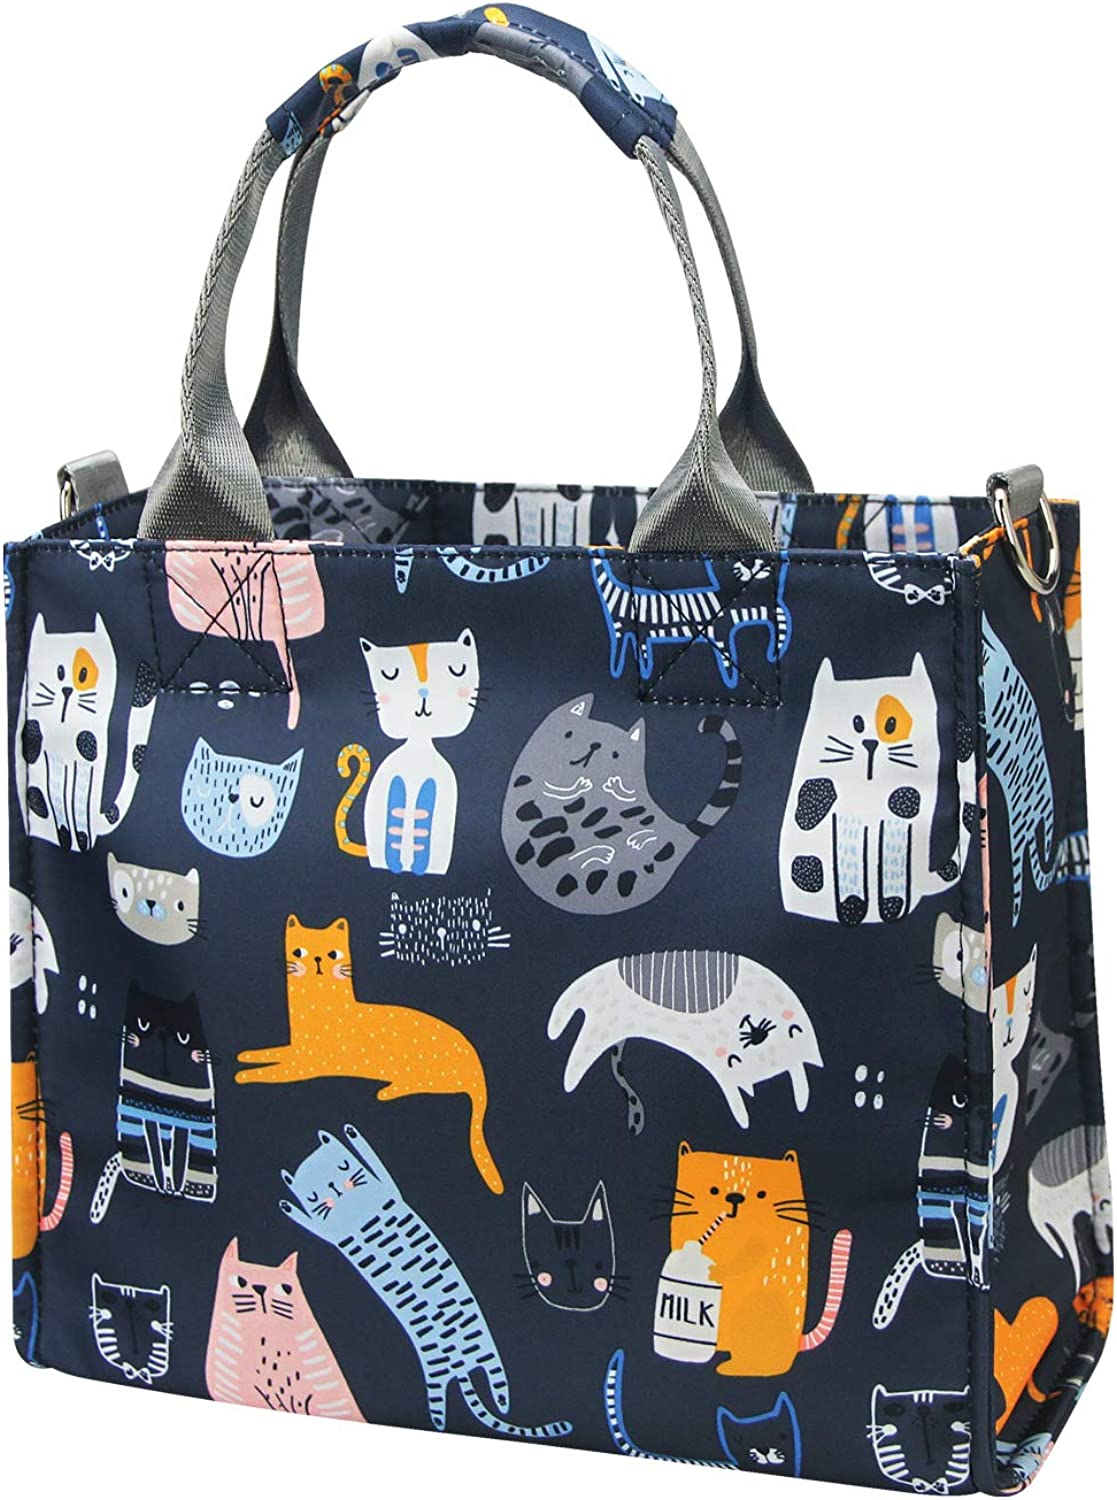 Diaper Bag for Baby Care Waterproof Multi-Function Diaper Tote Bag with Insulated Pocket Lightweight Fashion Baby Nursing Bag